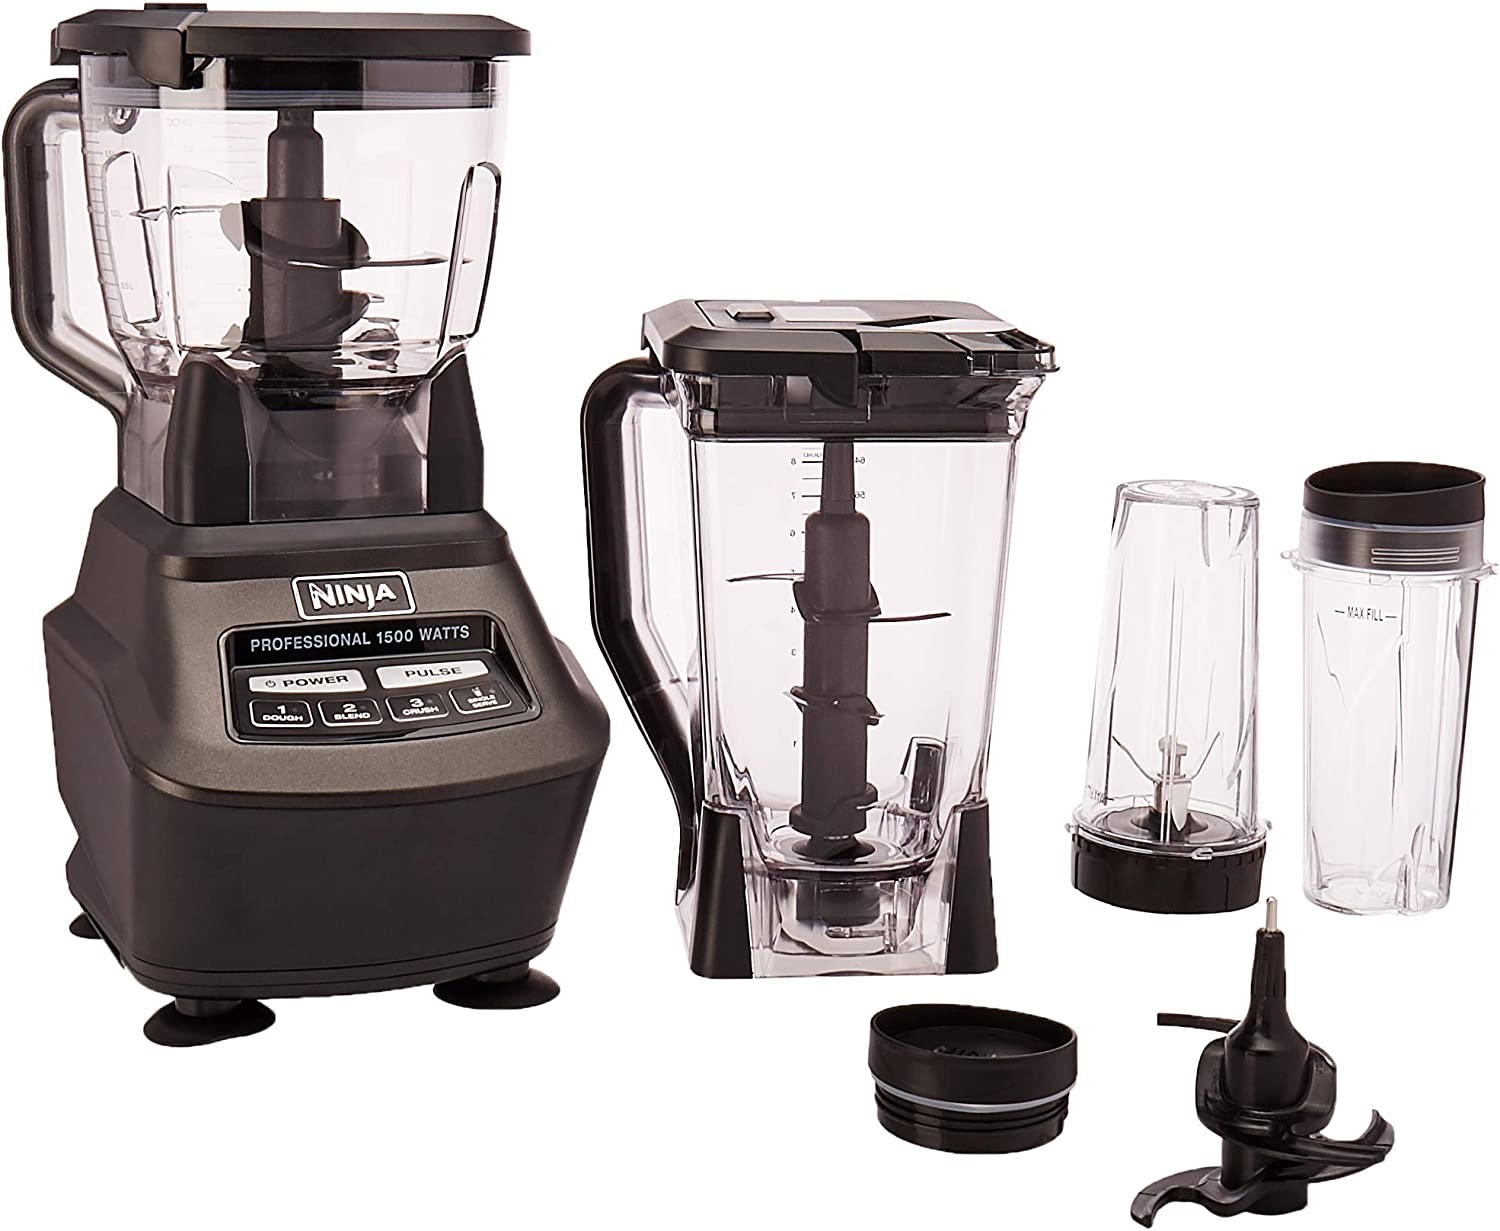 Ninja Mega Kitchen System BL770 Blender Food Processor with 1500W Auto-iQ Base, 72oz Pitcher, 64oz Processor Bowl, 2 16oz Cup for Smoothies, Dough More